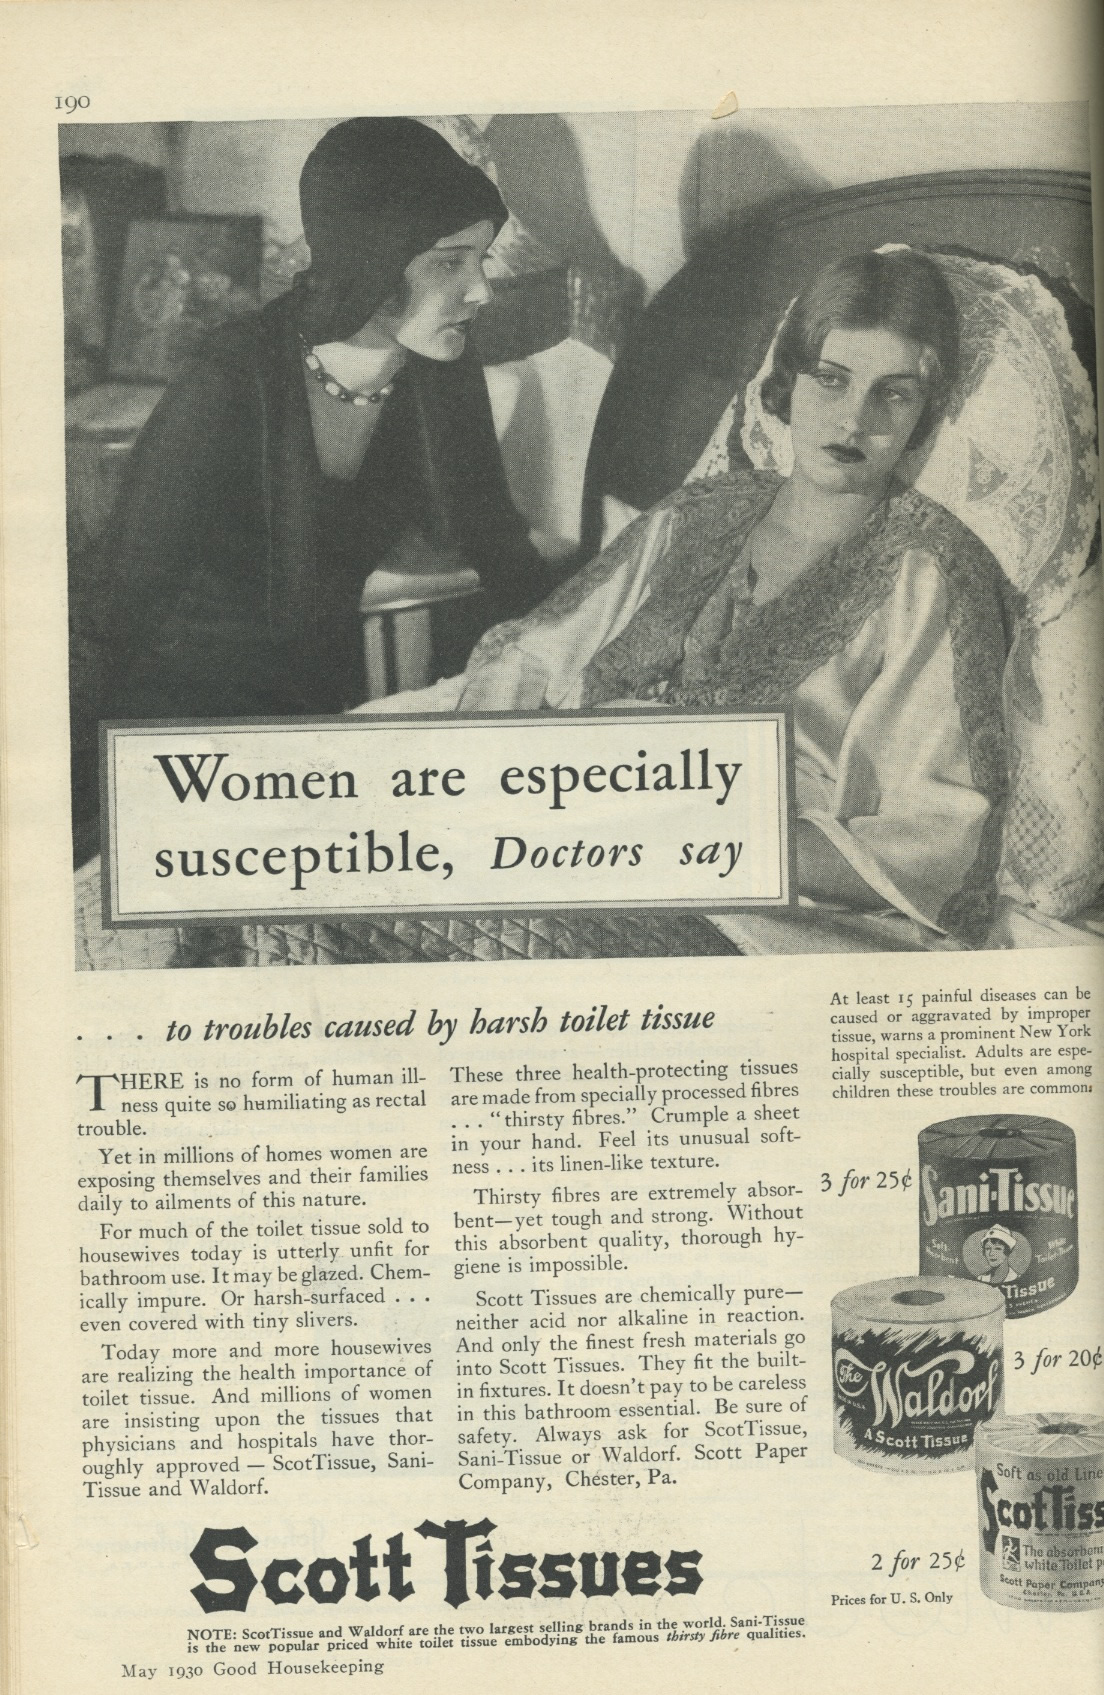 1930 Good Housekeeping Ad for Scott Tissue touting the benefits for women of the product